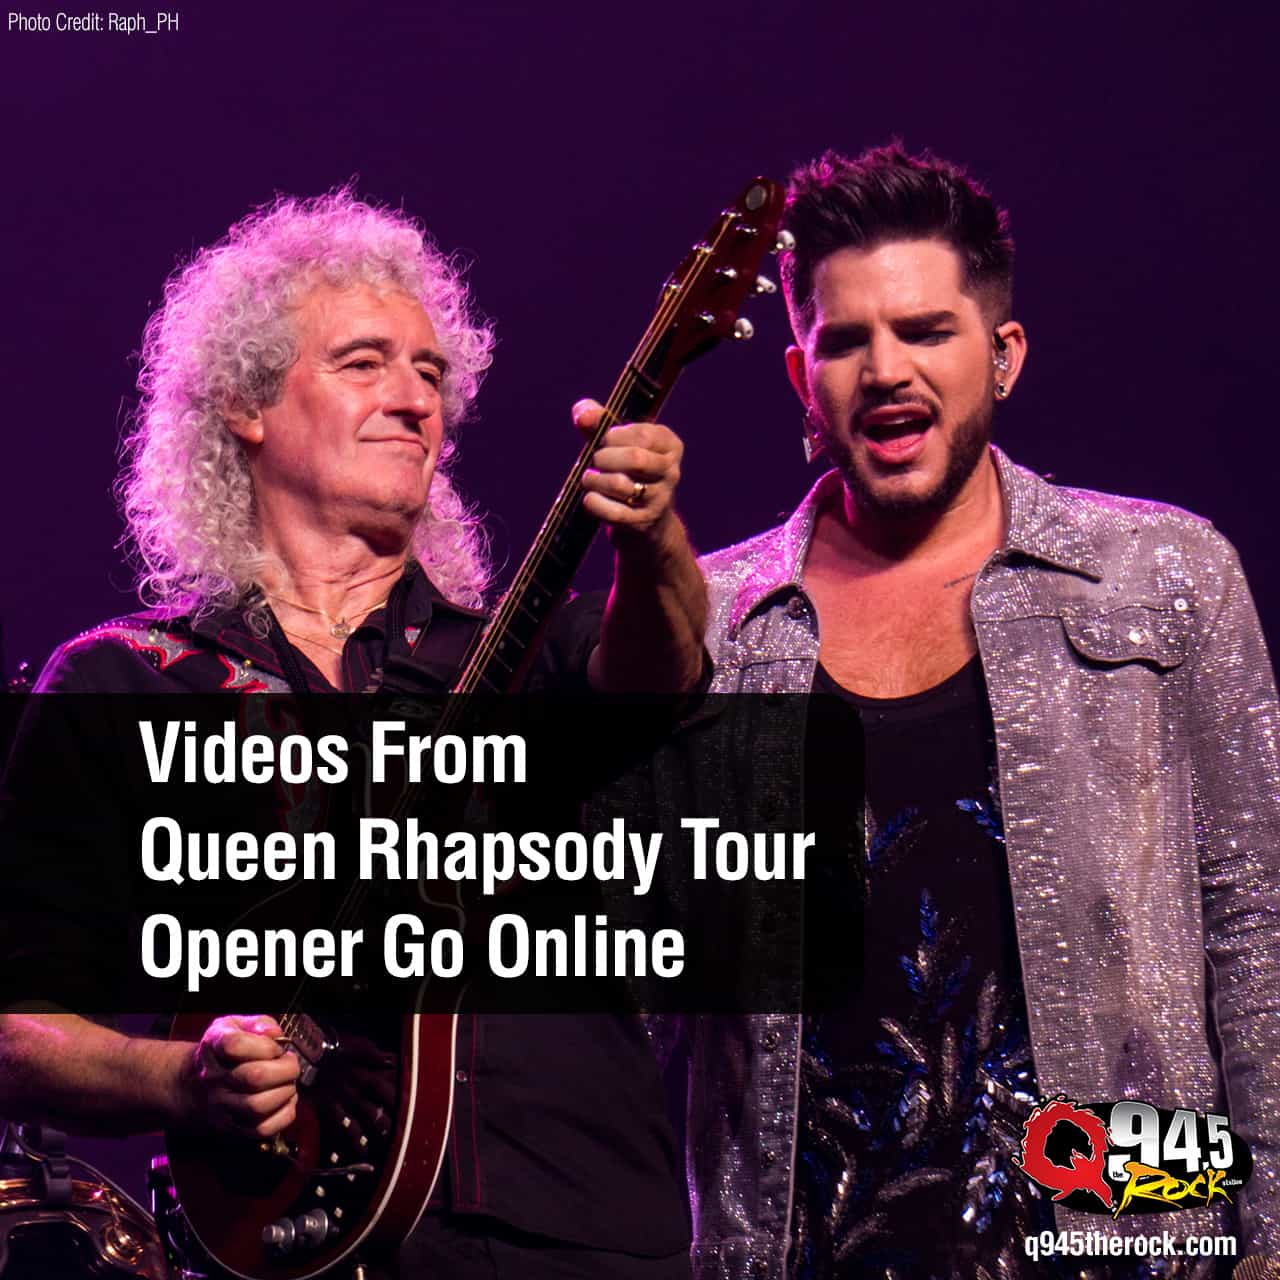 Video From Queen Rhapsody Tour Opener Goes Online